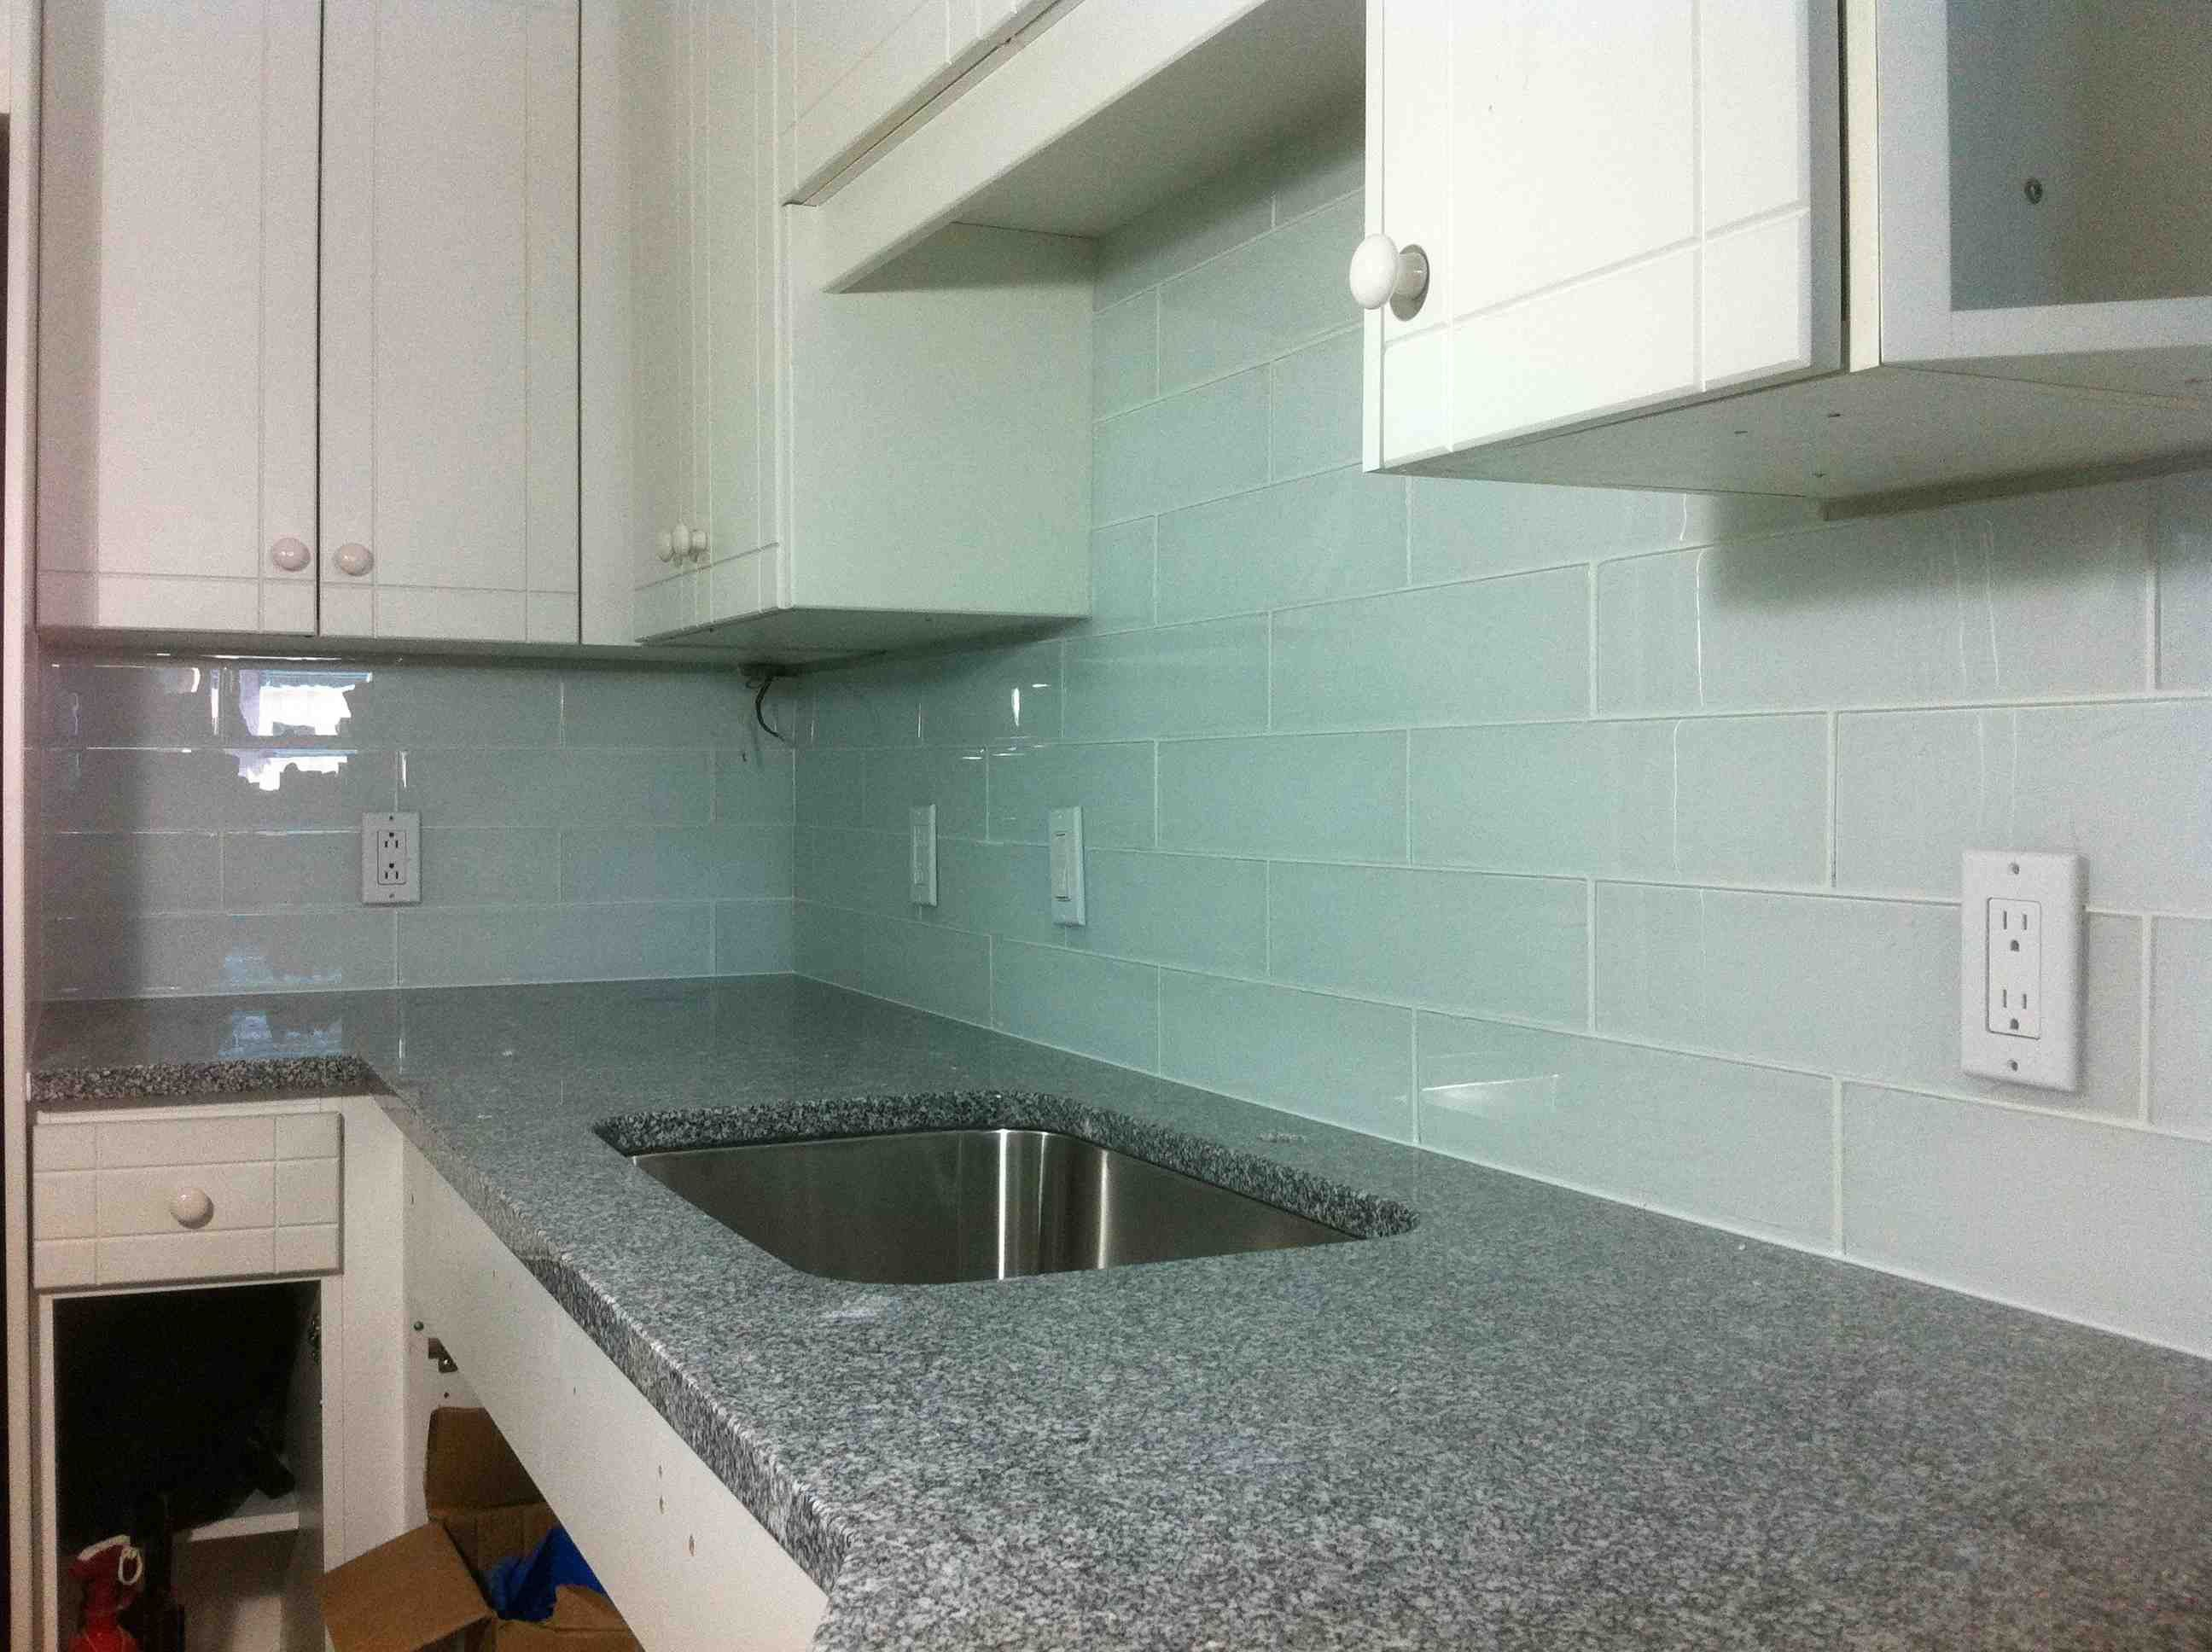 kitchen counters and backsplash Bathroom Kitchen Modern Glass Subway Tile Backsplash For Kitchen Designs Glass Subway Tile Backsplash